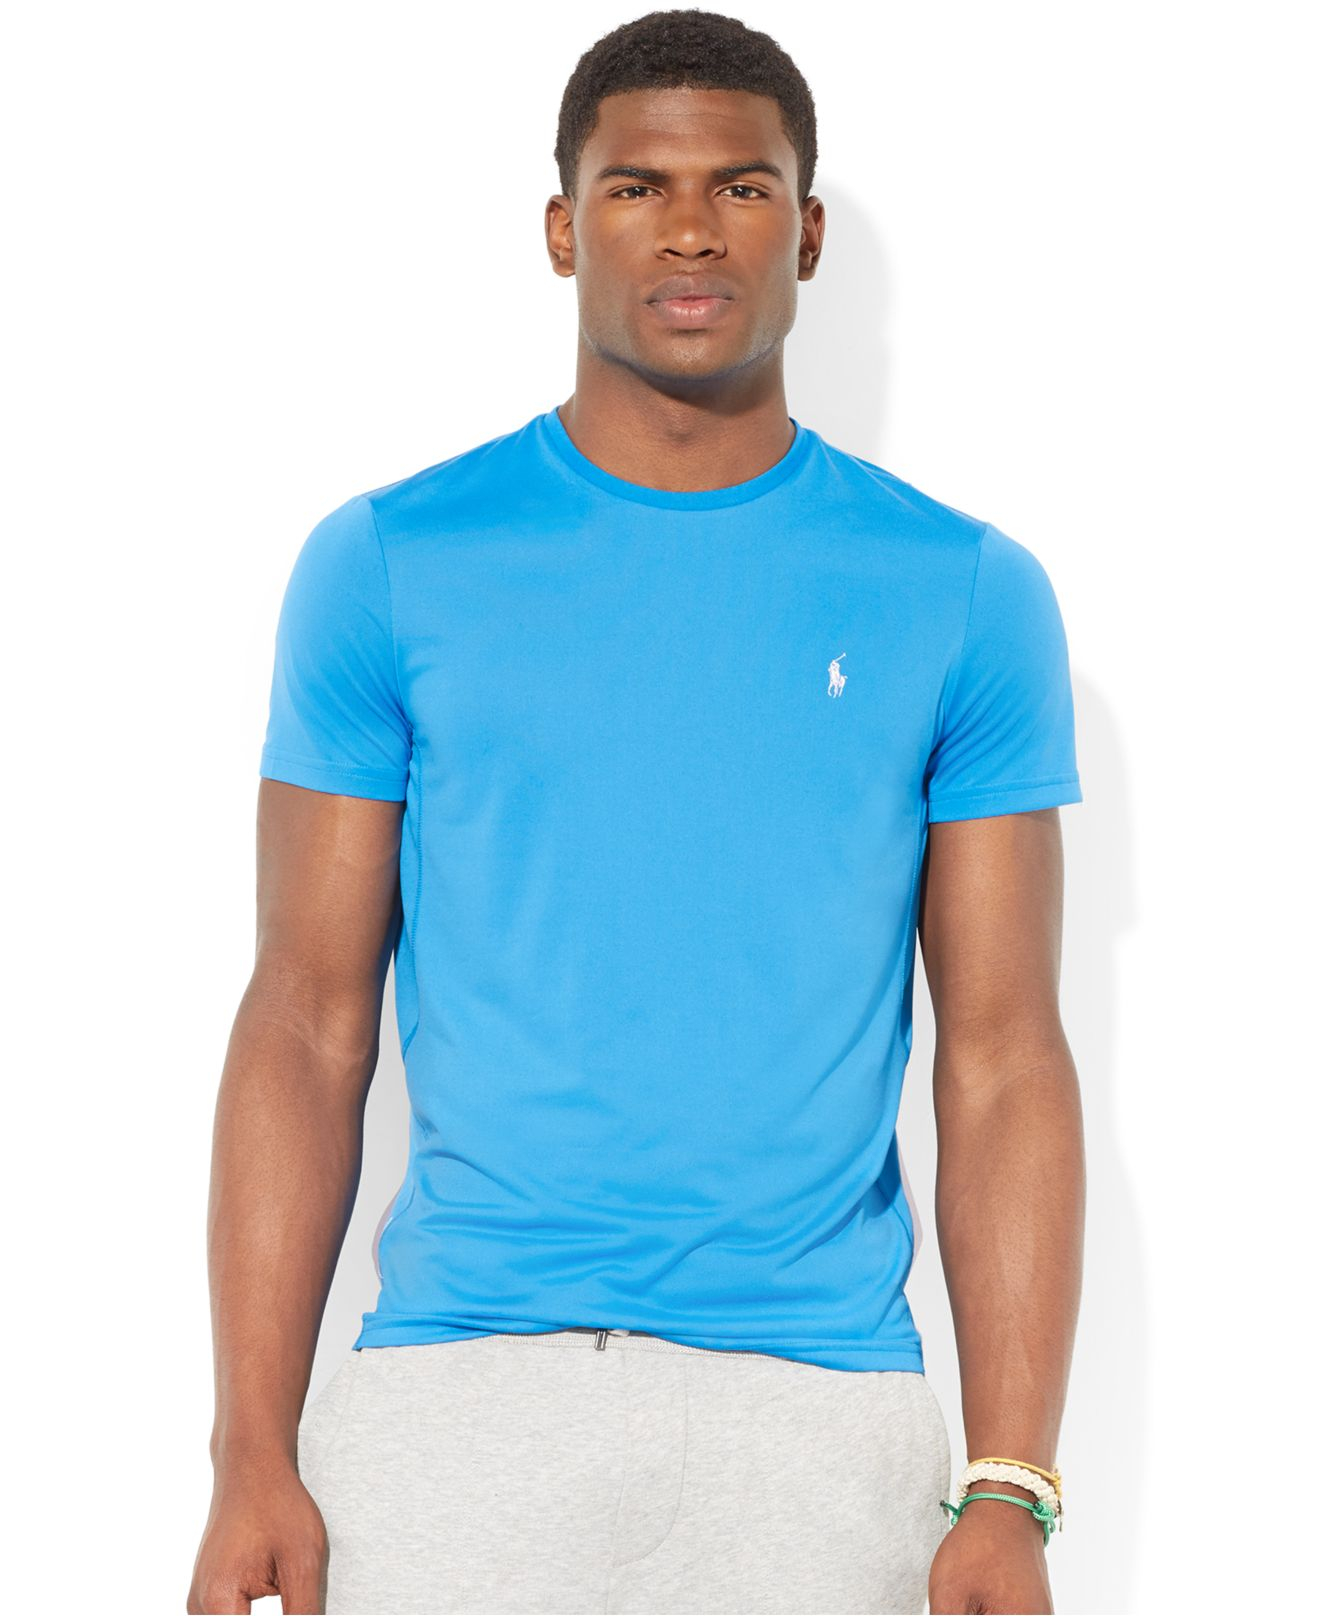 524f0c7bf Polo Ralph Lauren Jersey Performance T-shirt in Blue for Men - Lyst